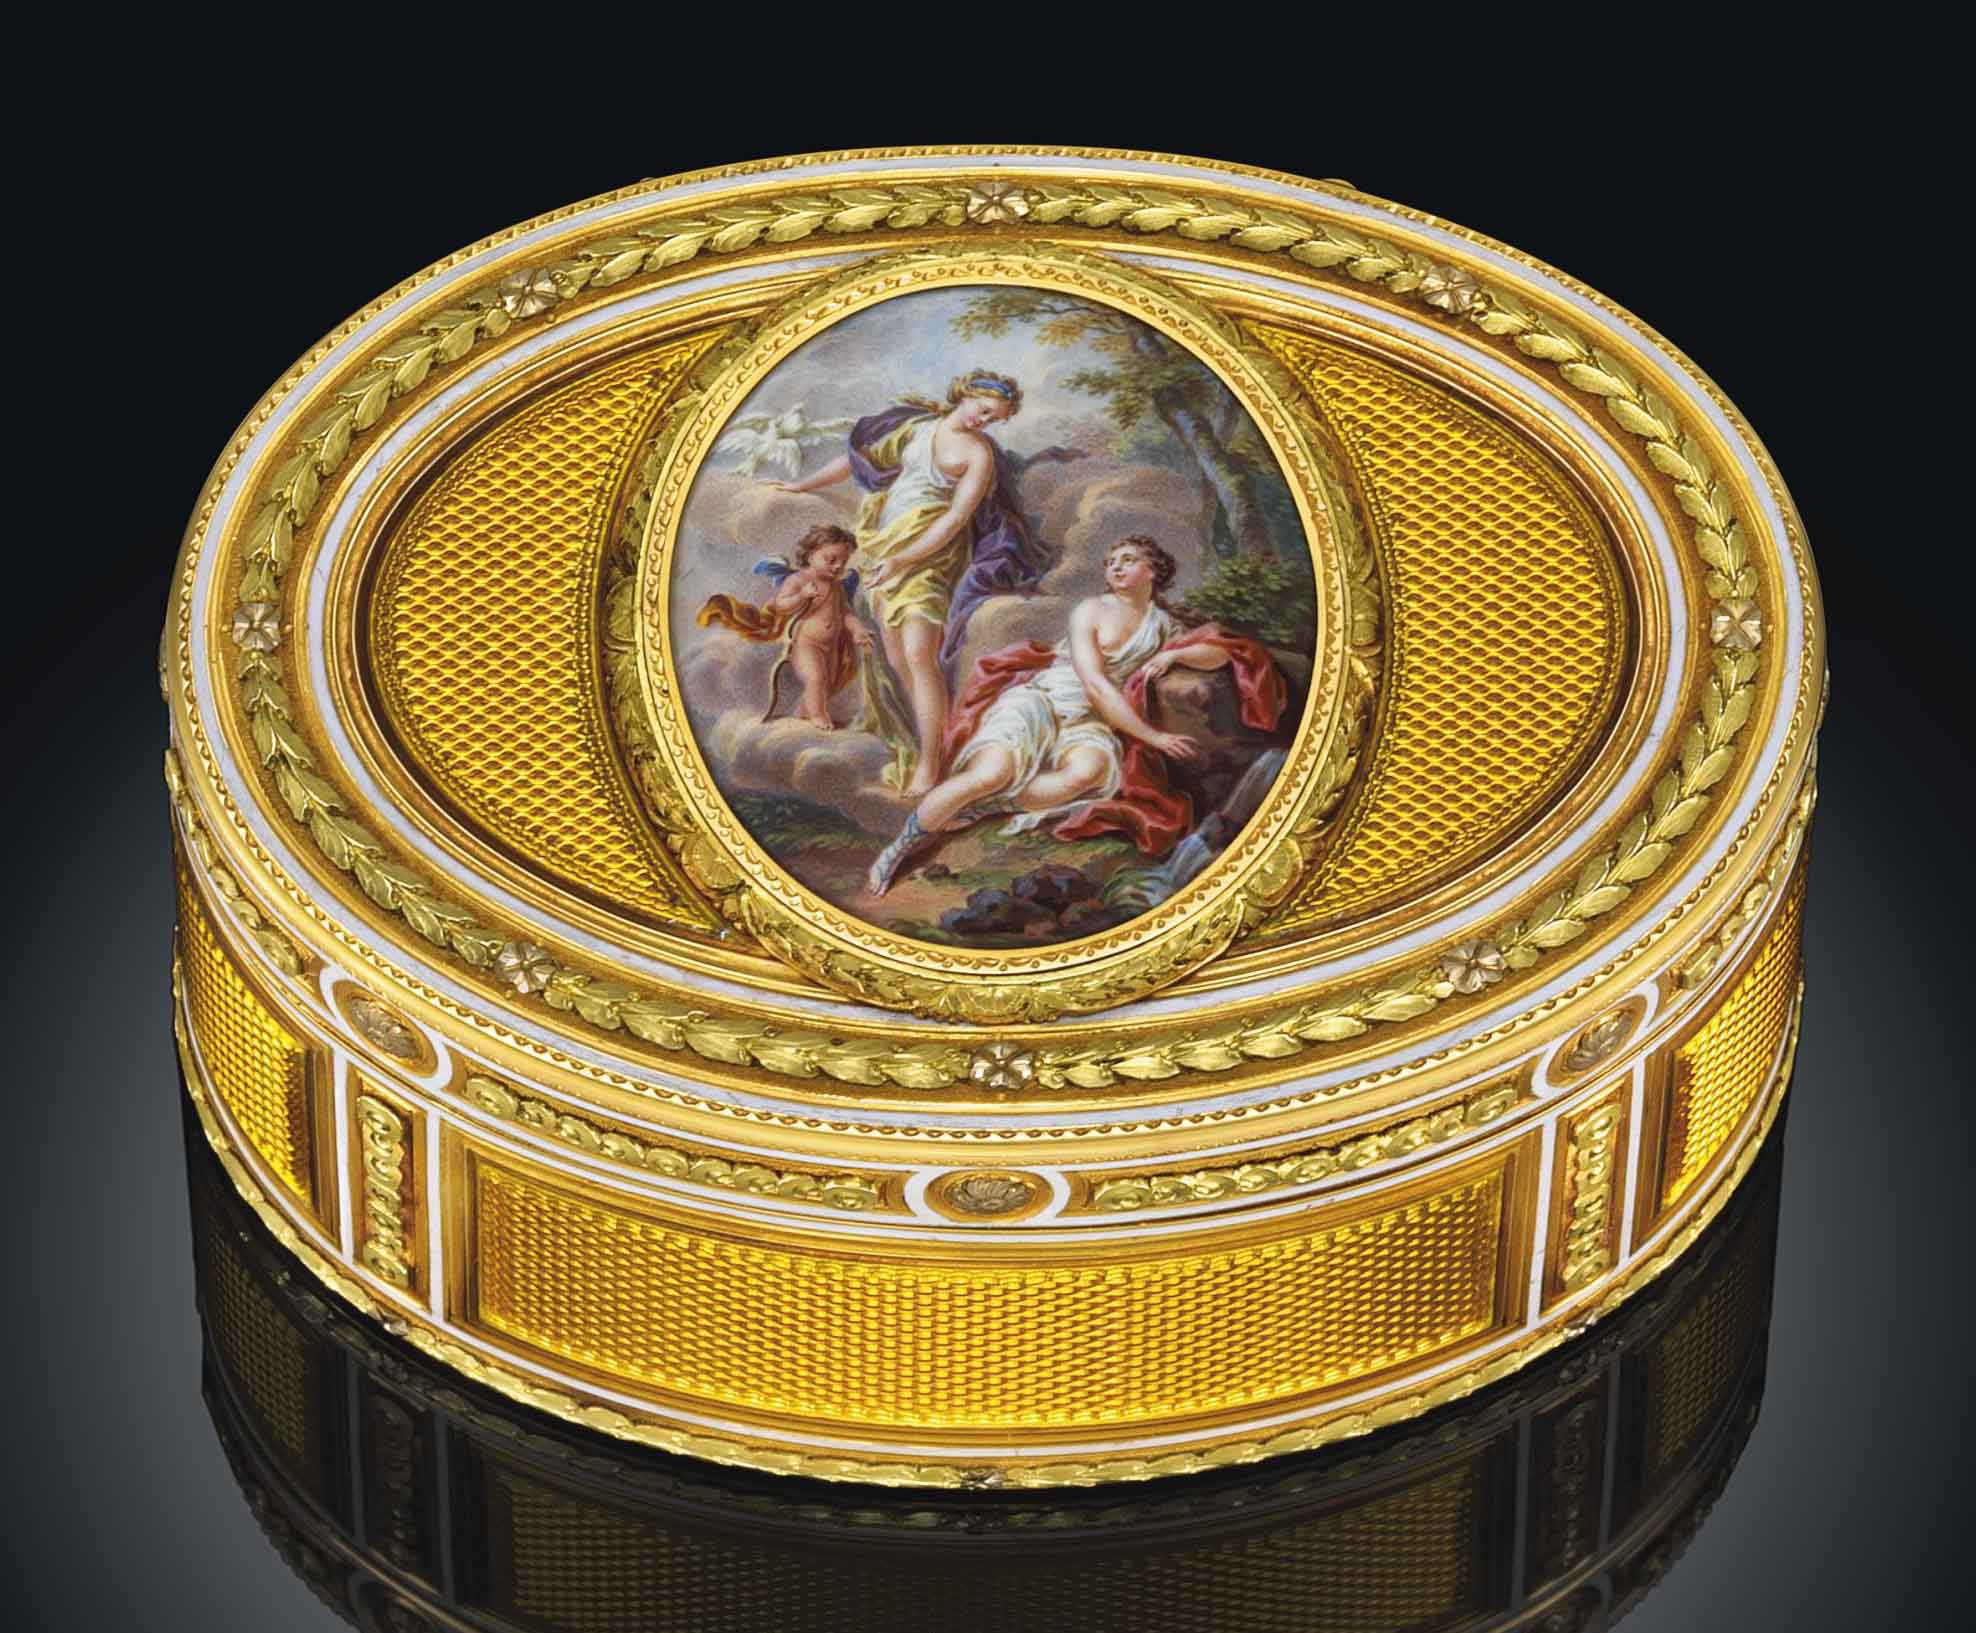 AN IMPORTANT LOUIS XVI ENAMELLED THREE-COLOUR GOLD SNUFF-BOX SET WITH AN ENAMEL PLAQUE